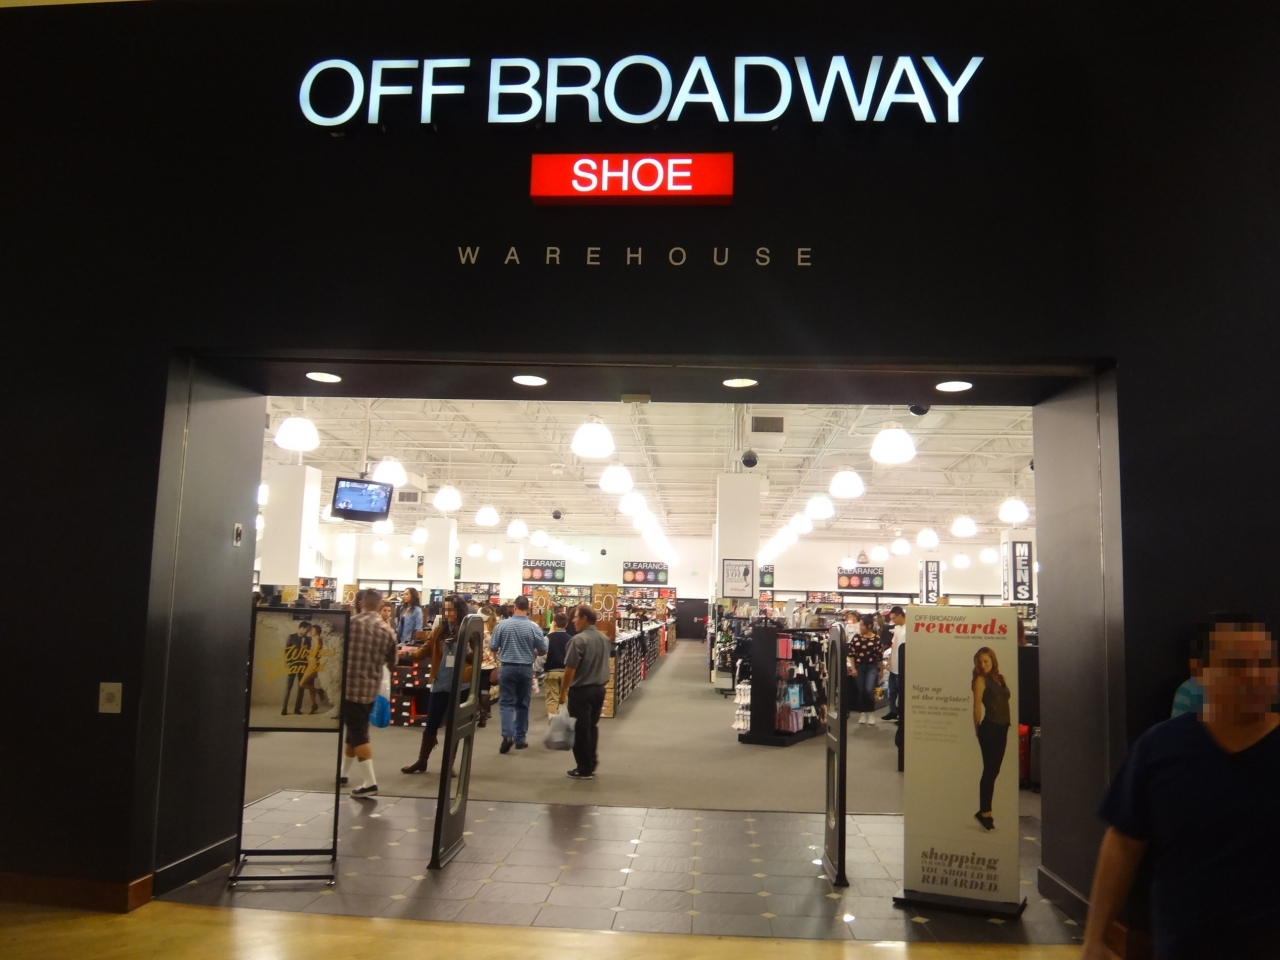 Off Broadway Shoes at W Sunset Blvd, Los Angeles, CA store location, business hours, driving direction, map, phone number and other services.